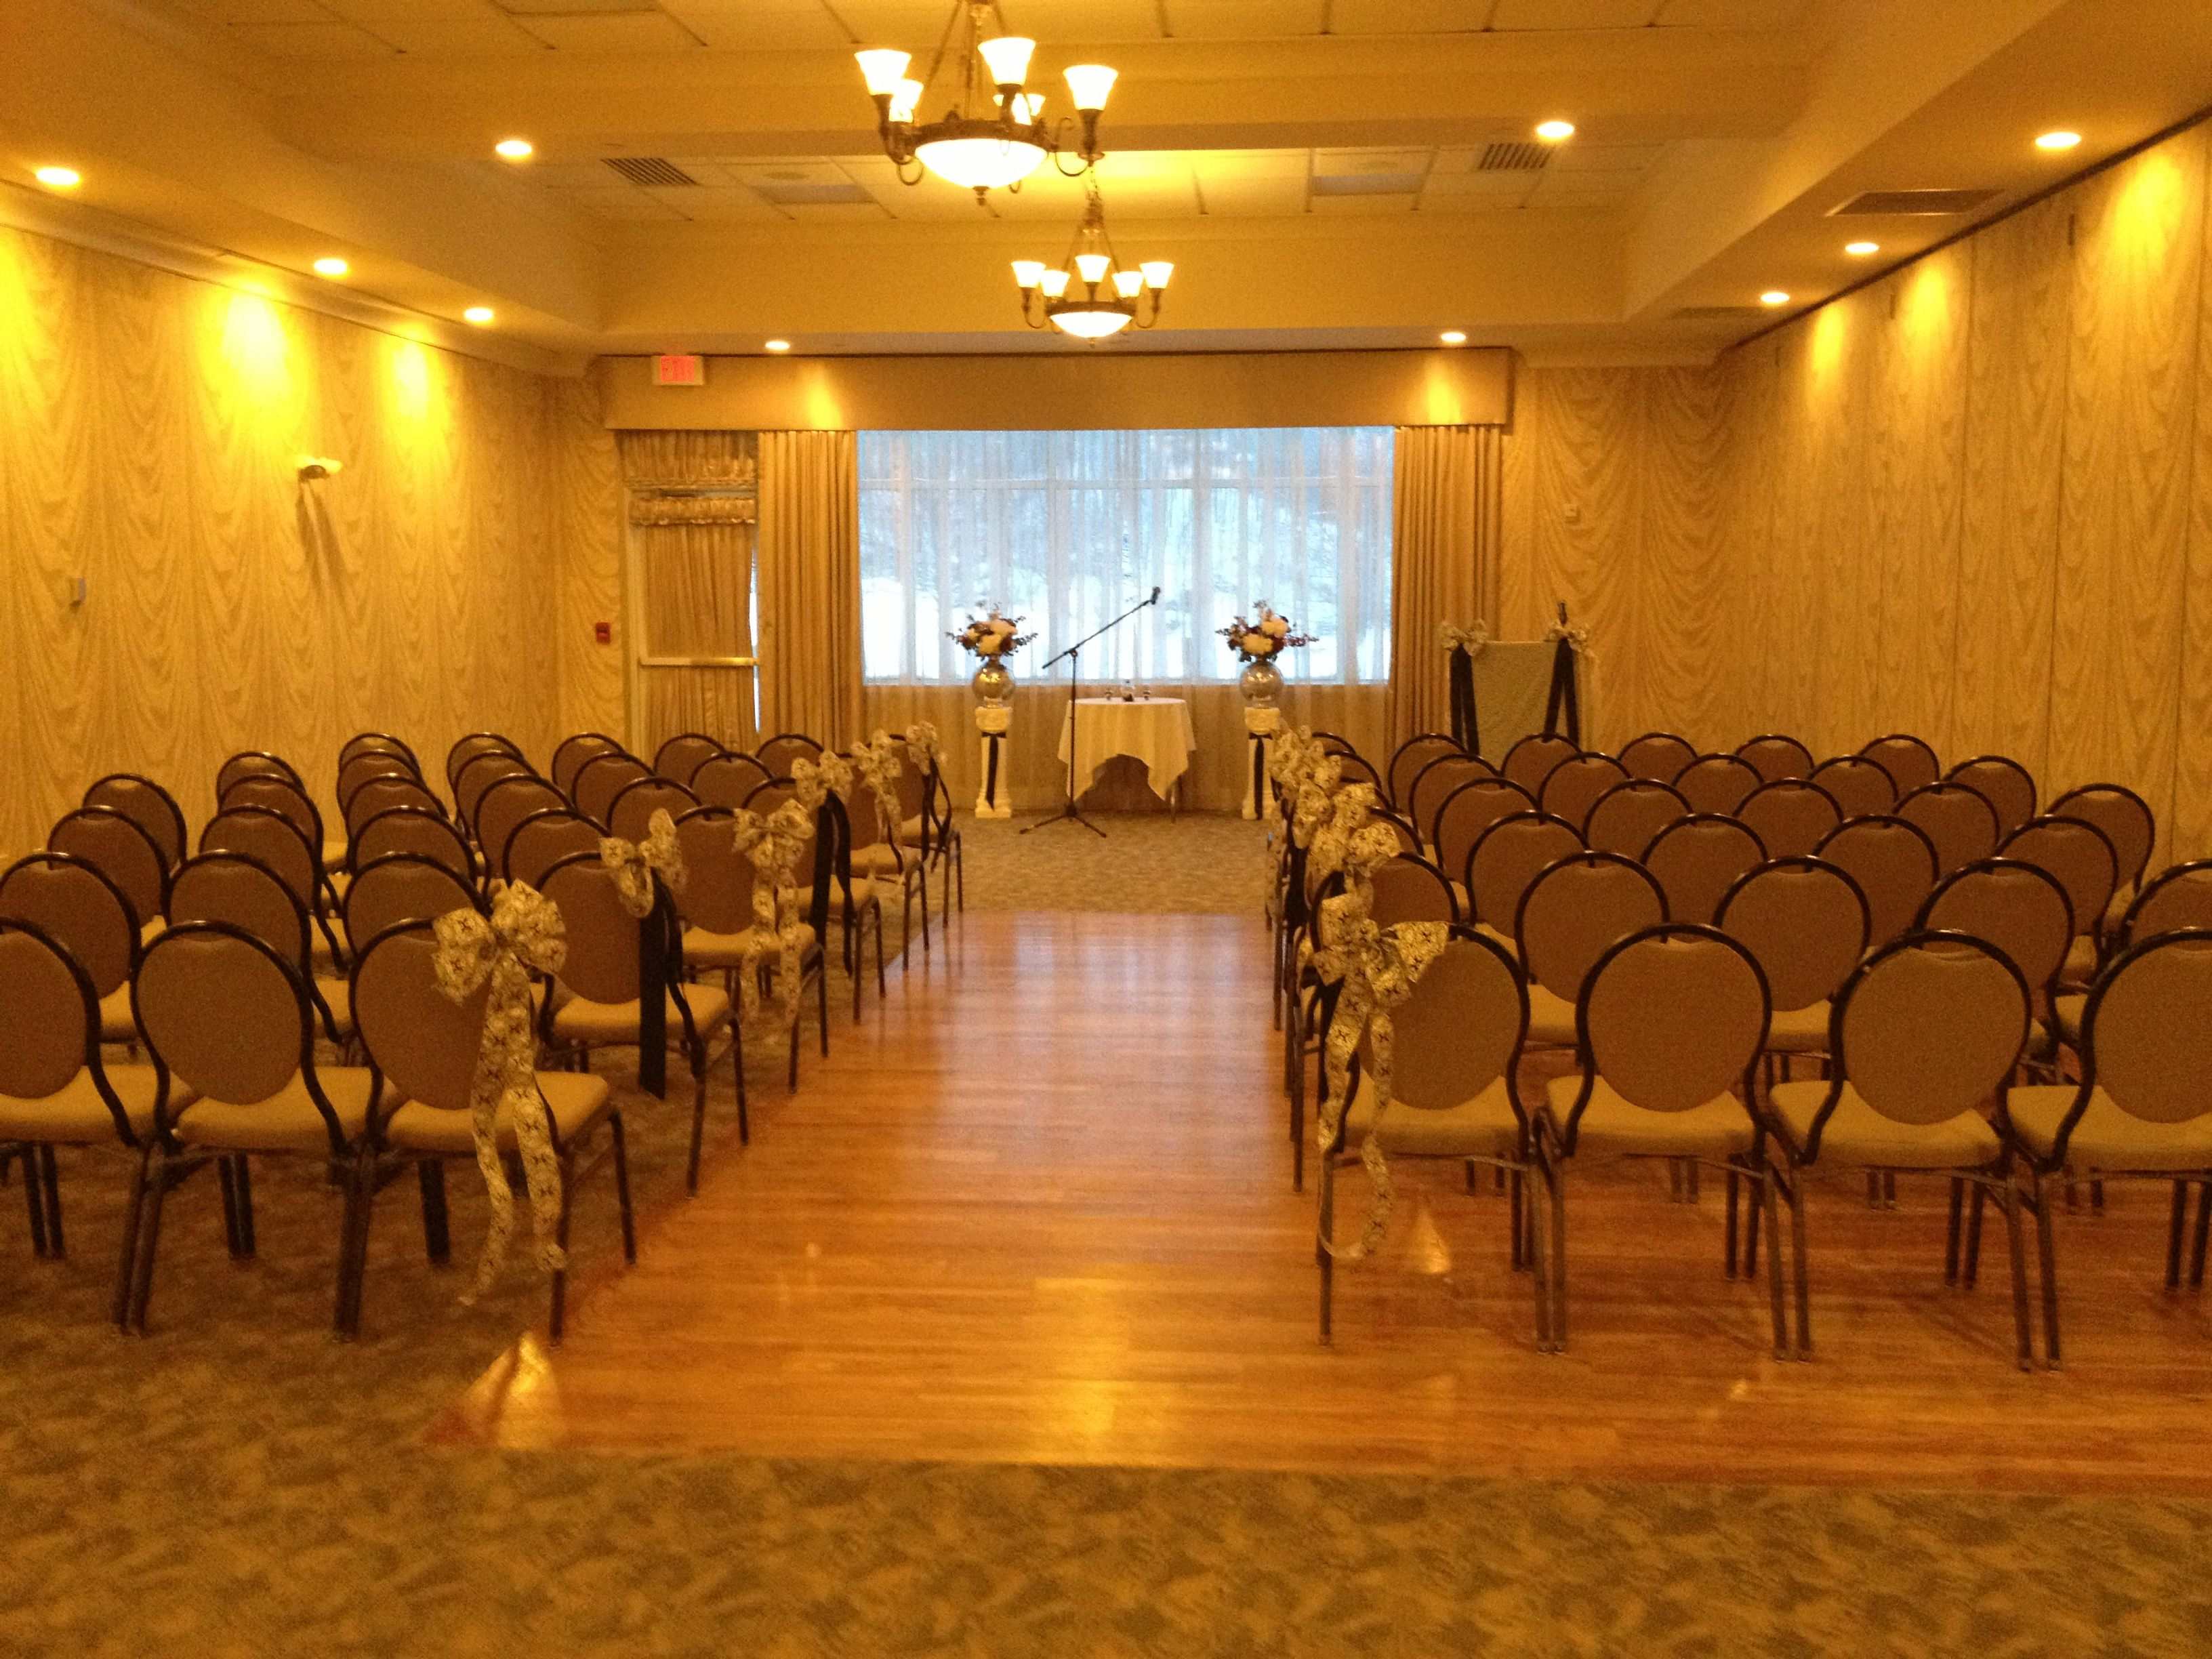 Preparing for the Durgin/Lapalnte wedding ceremony at The Hilton ...